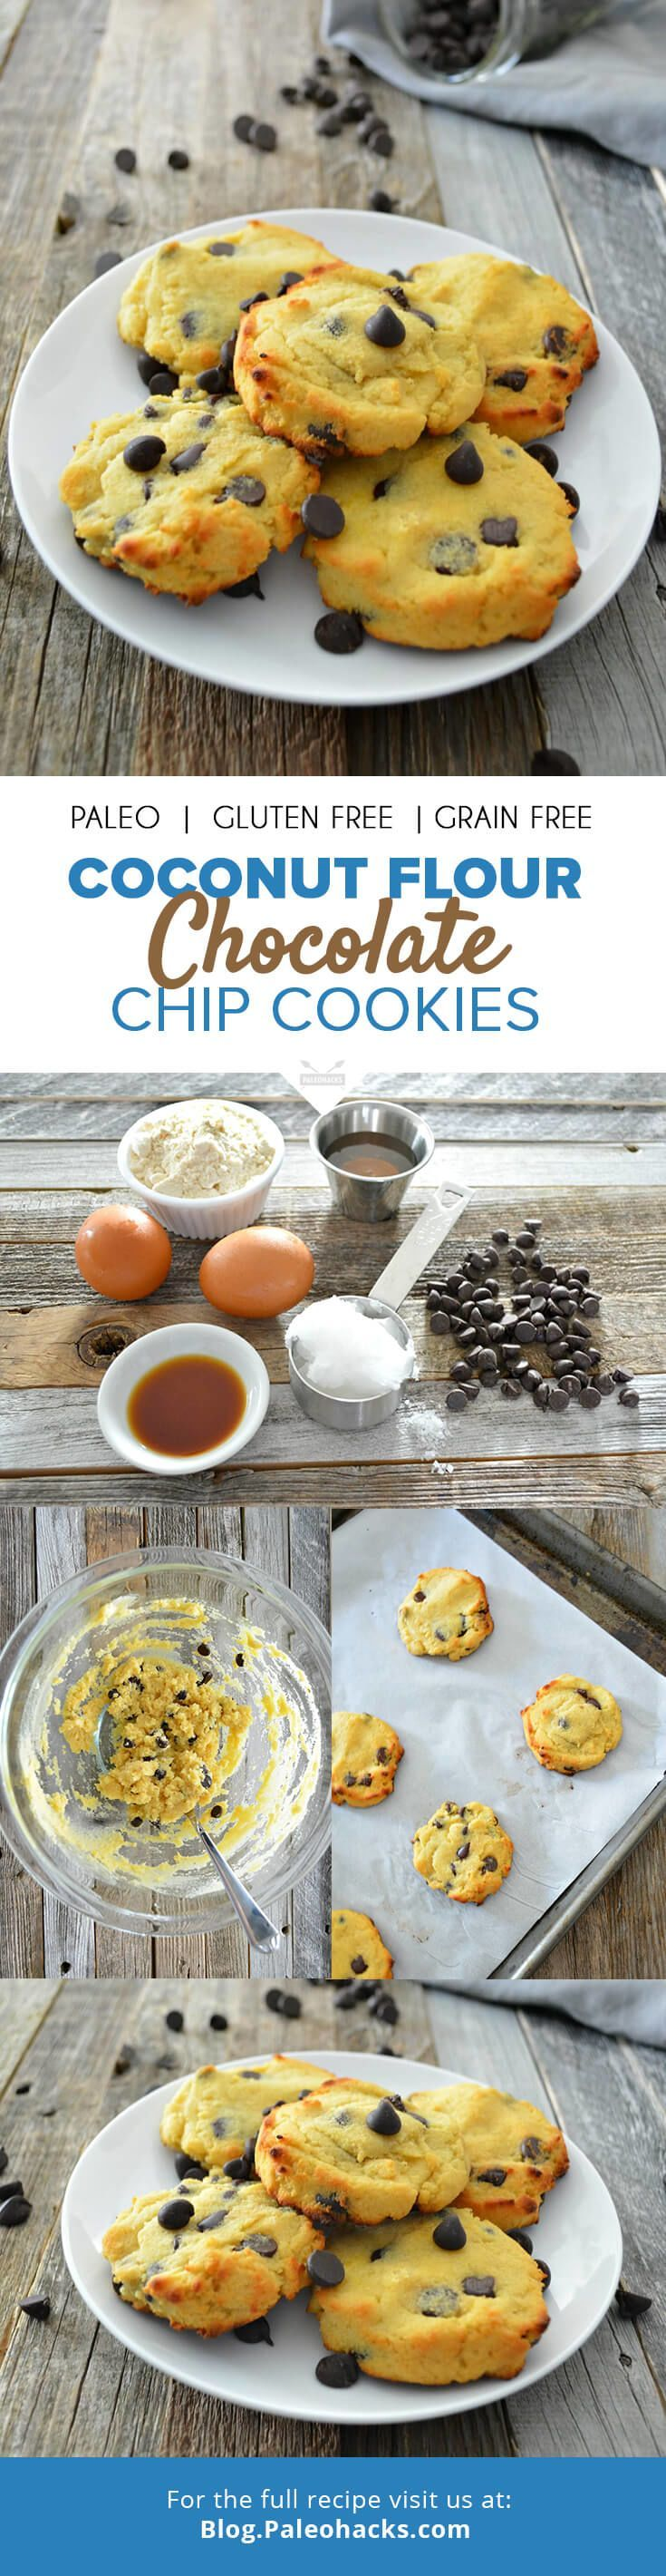 1/3 cup coconut flour 1/3 cup dark chocolate chips 2 whole eggs 1/4 cup organic, cold-pressed virgin coconut oil 1/4 cup raw honey 1 tsp vanilla extract pinch of sea salt